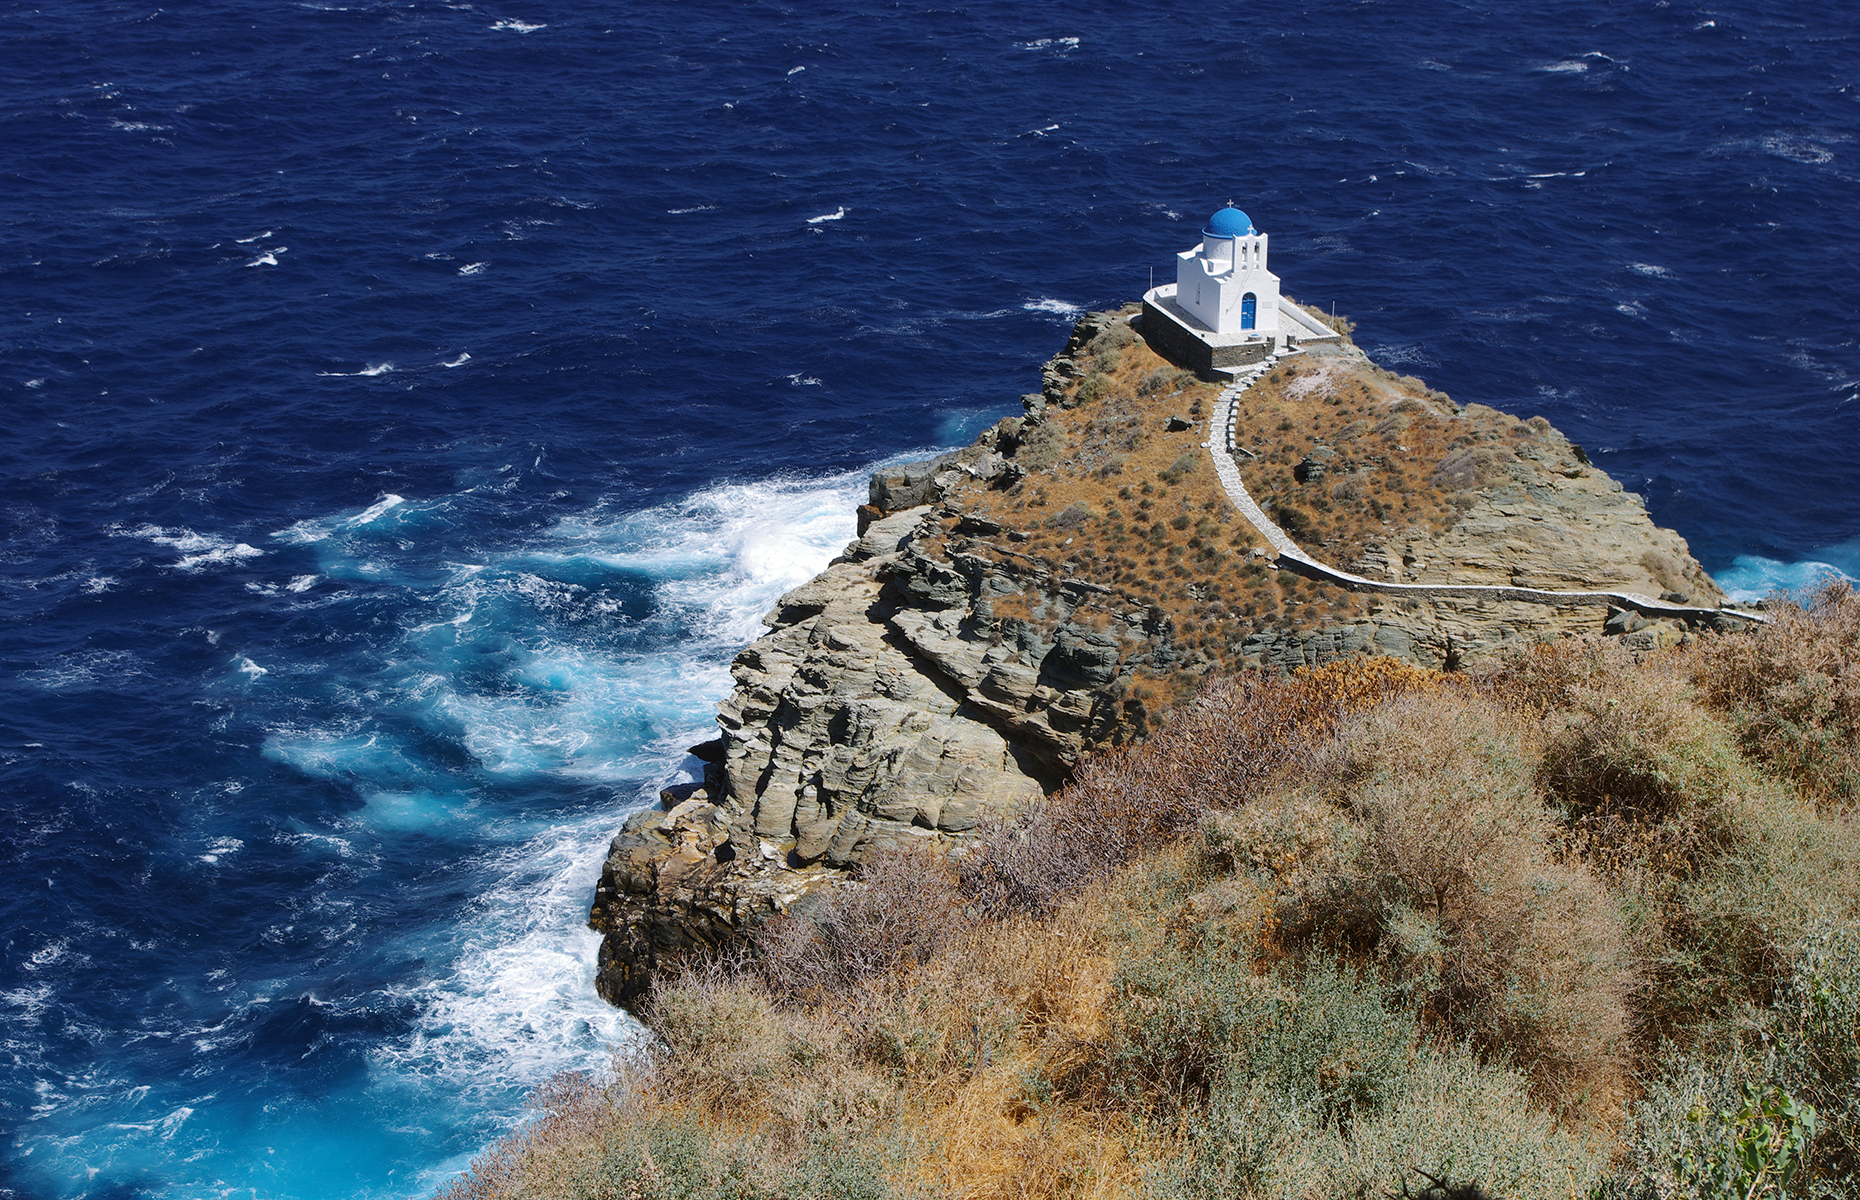 The Church of the Seven Martyrs on Sifnos (Image: sarikosta/Shutterstock)